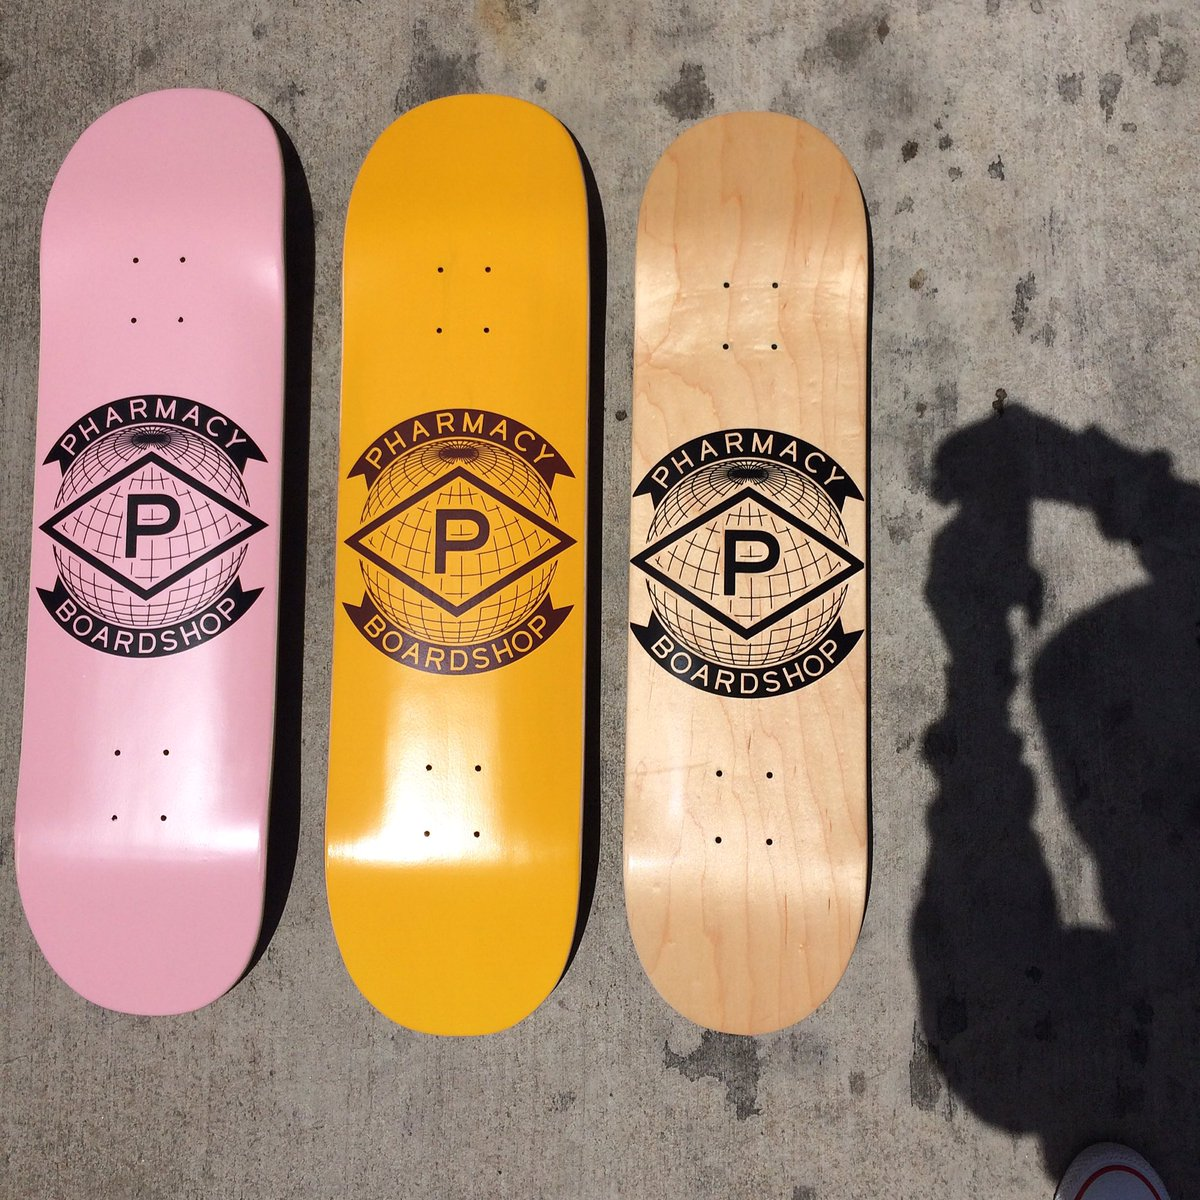 $20 dollar boards Available at all locations today. #pharmacyboardshop https://t.co/CWqUgQs4E8